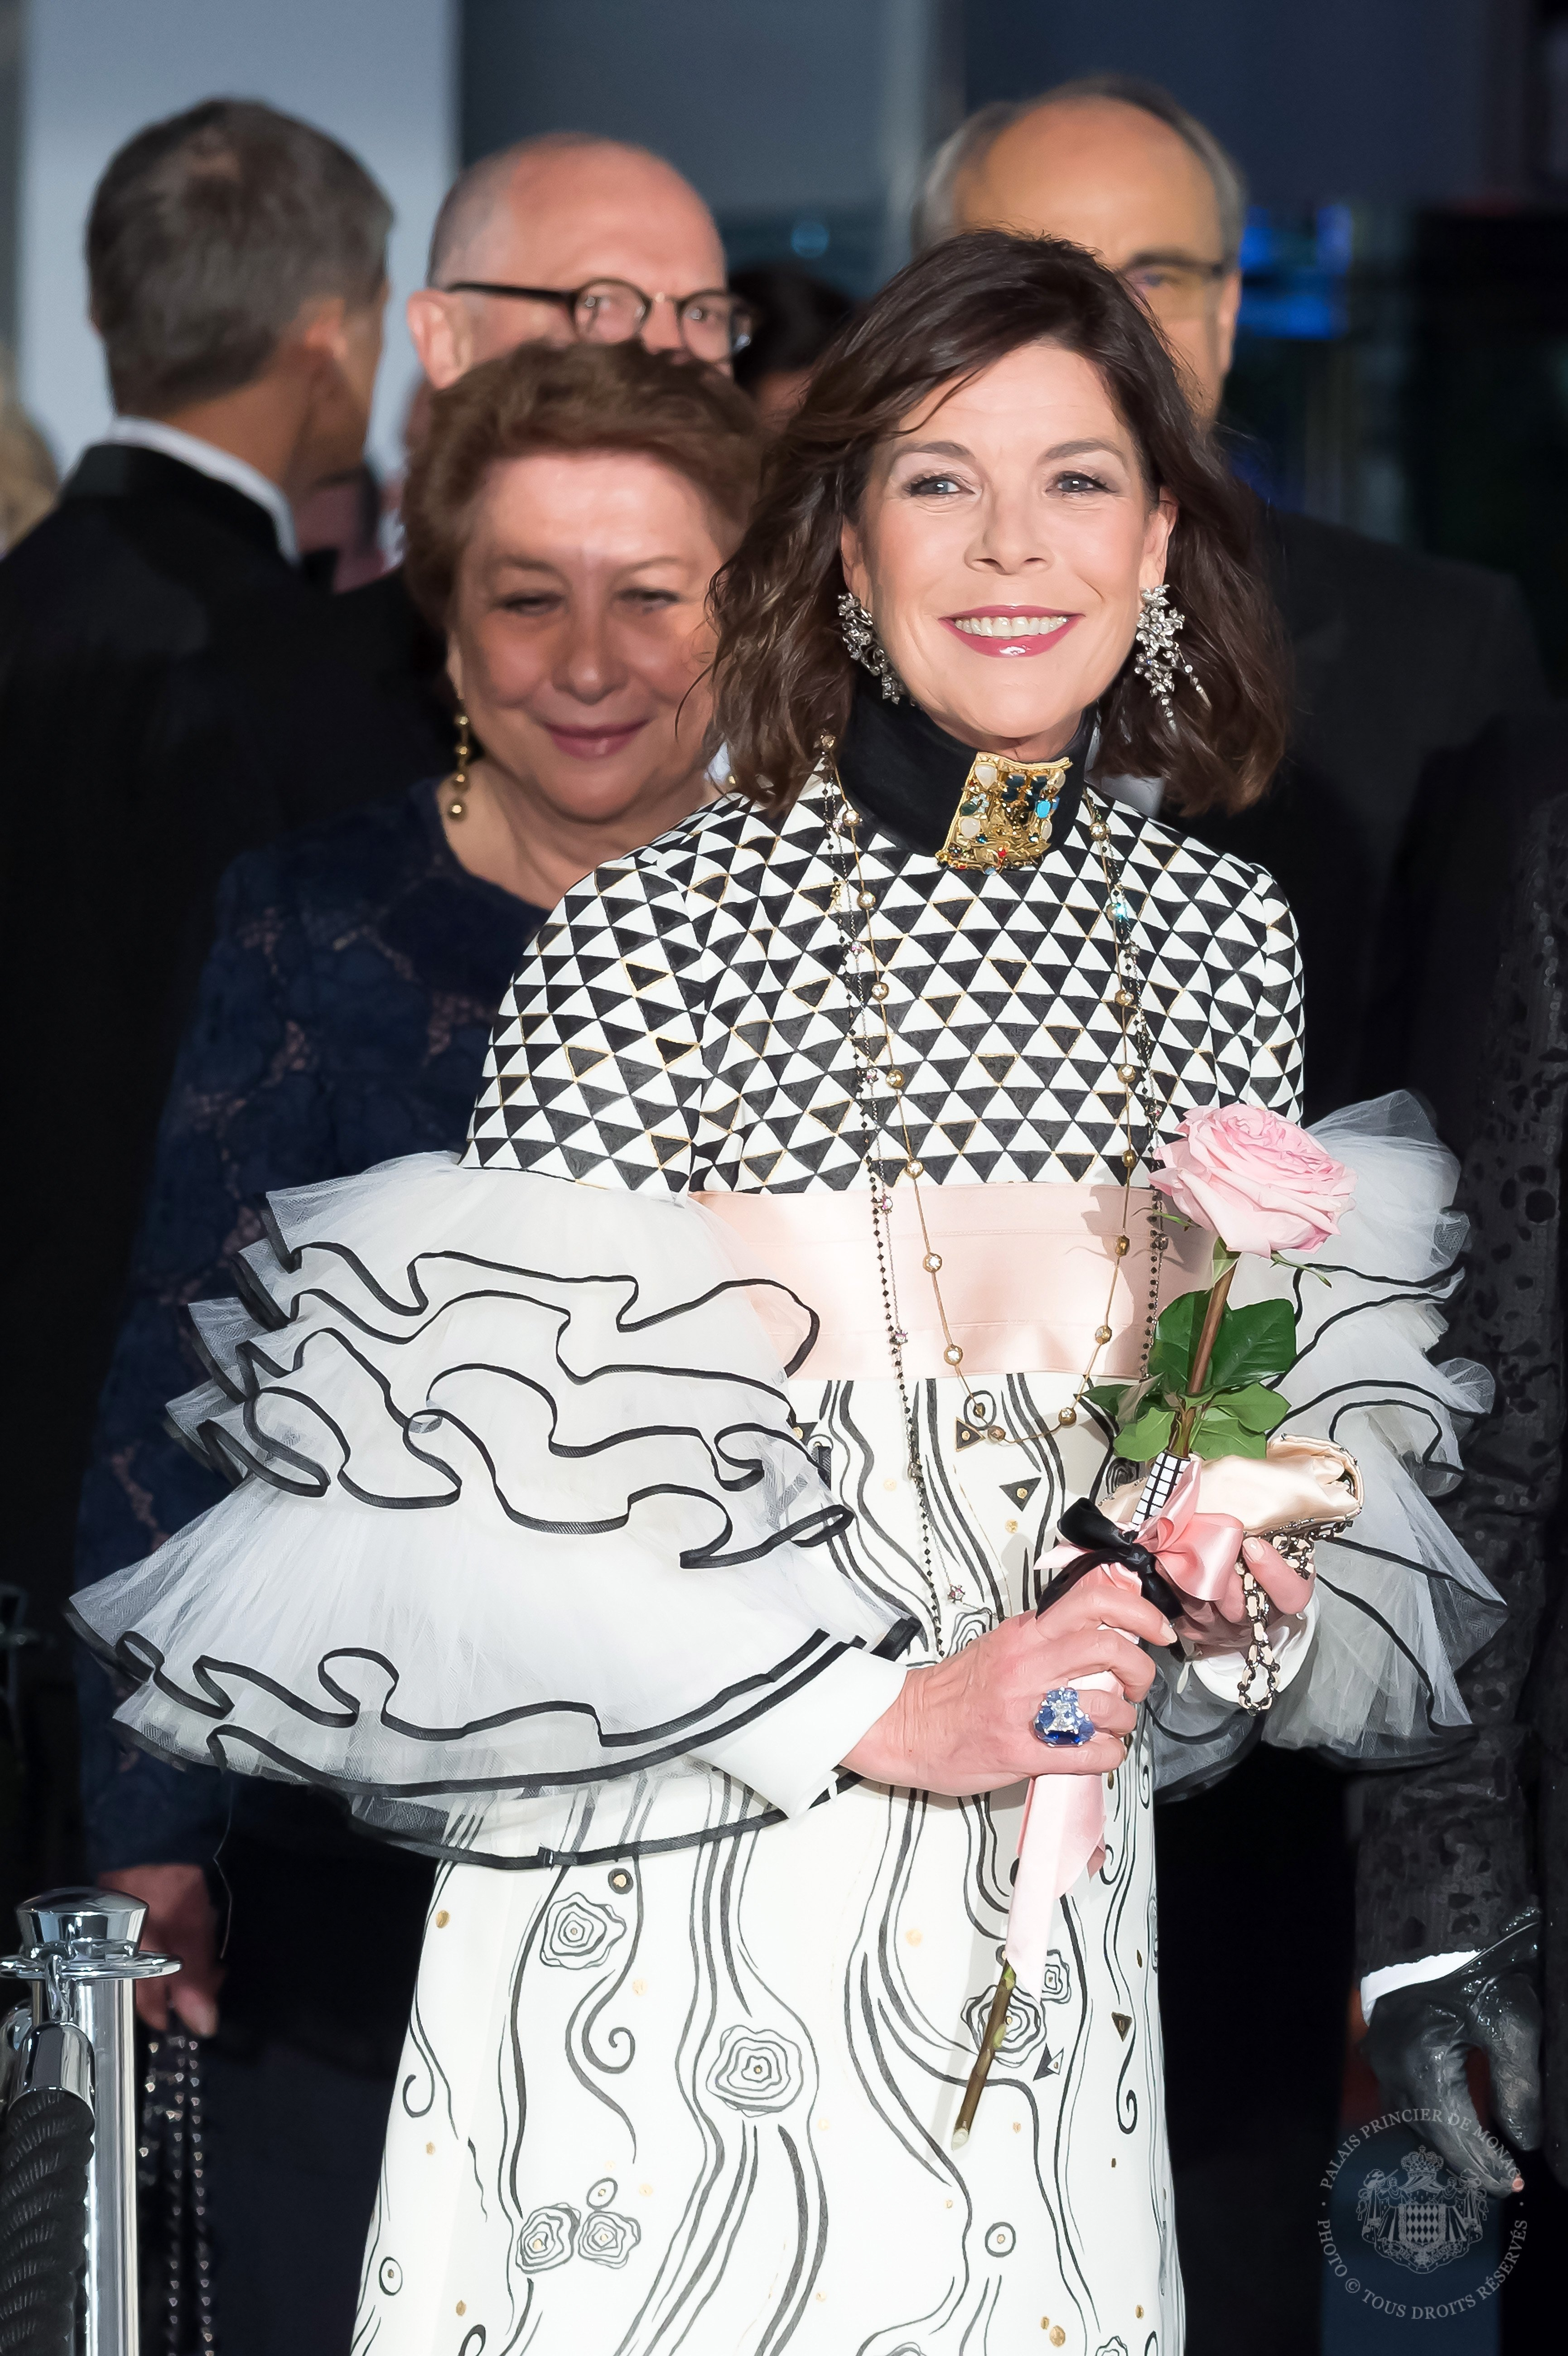 Princess Caroline of hanover at the Rose Ball 2017 To Benefit The Princess Grace Foundation at Sporting Monte-Carlo on March 18, 2017 | Source: Getty Images